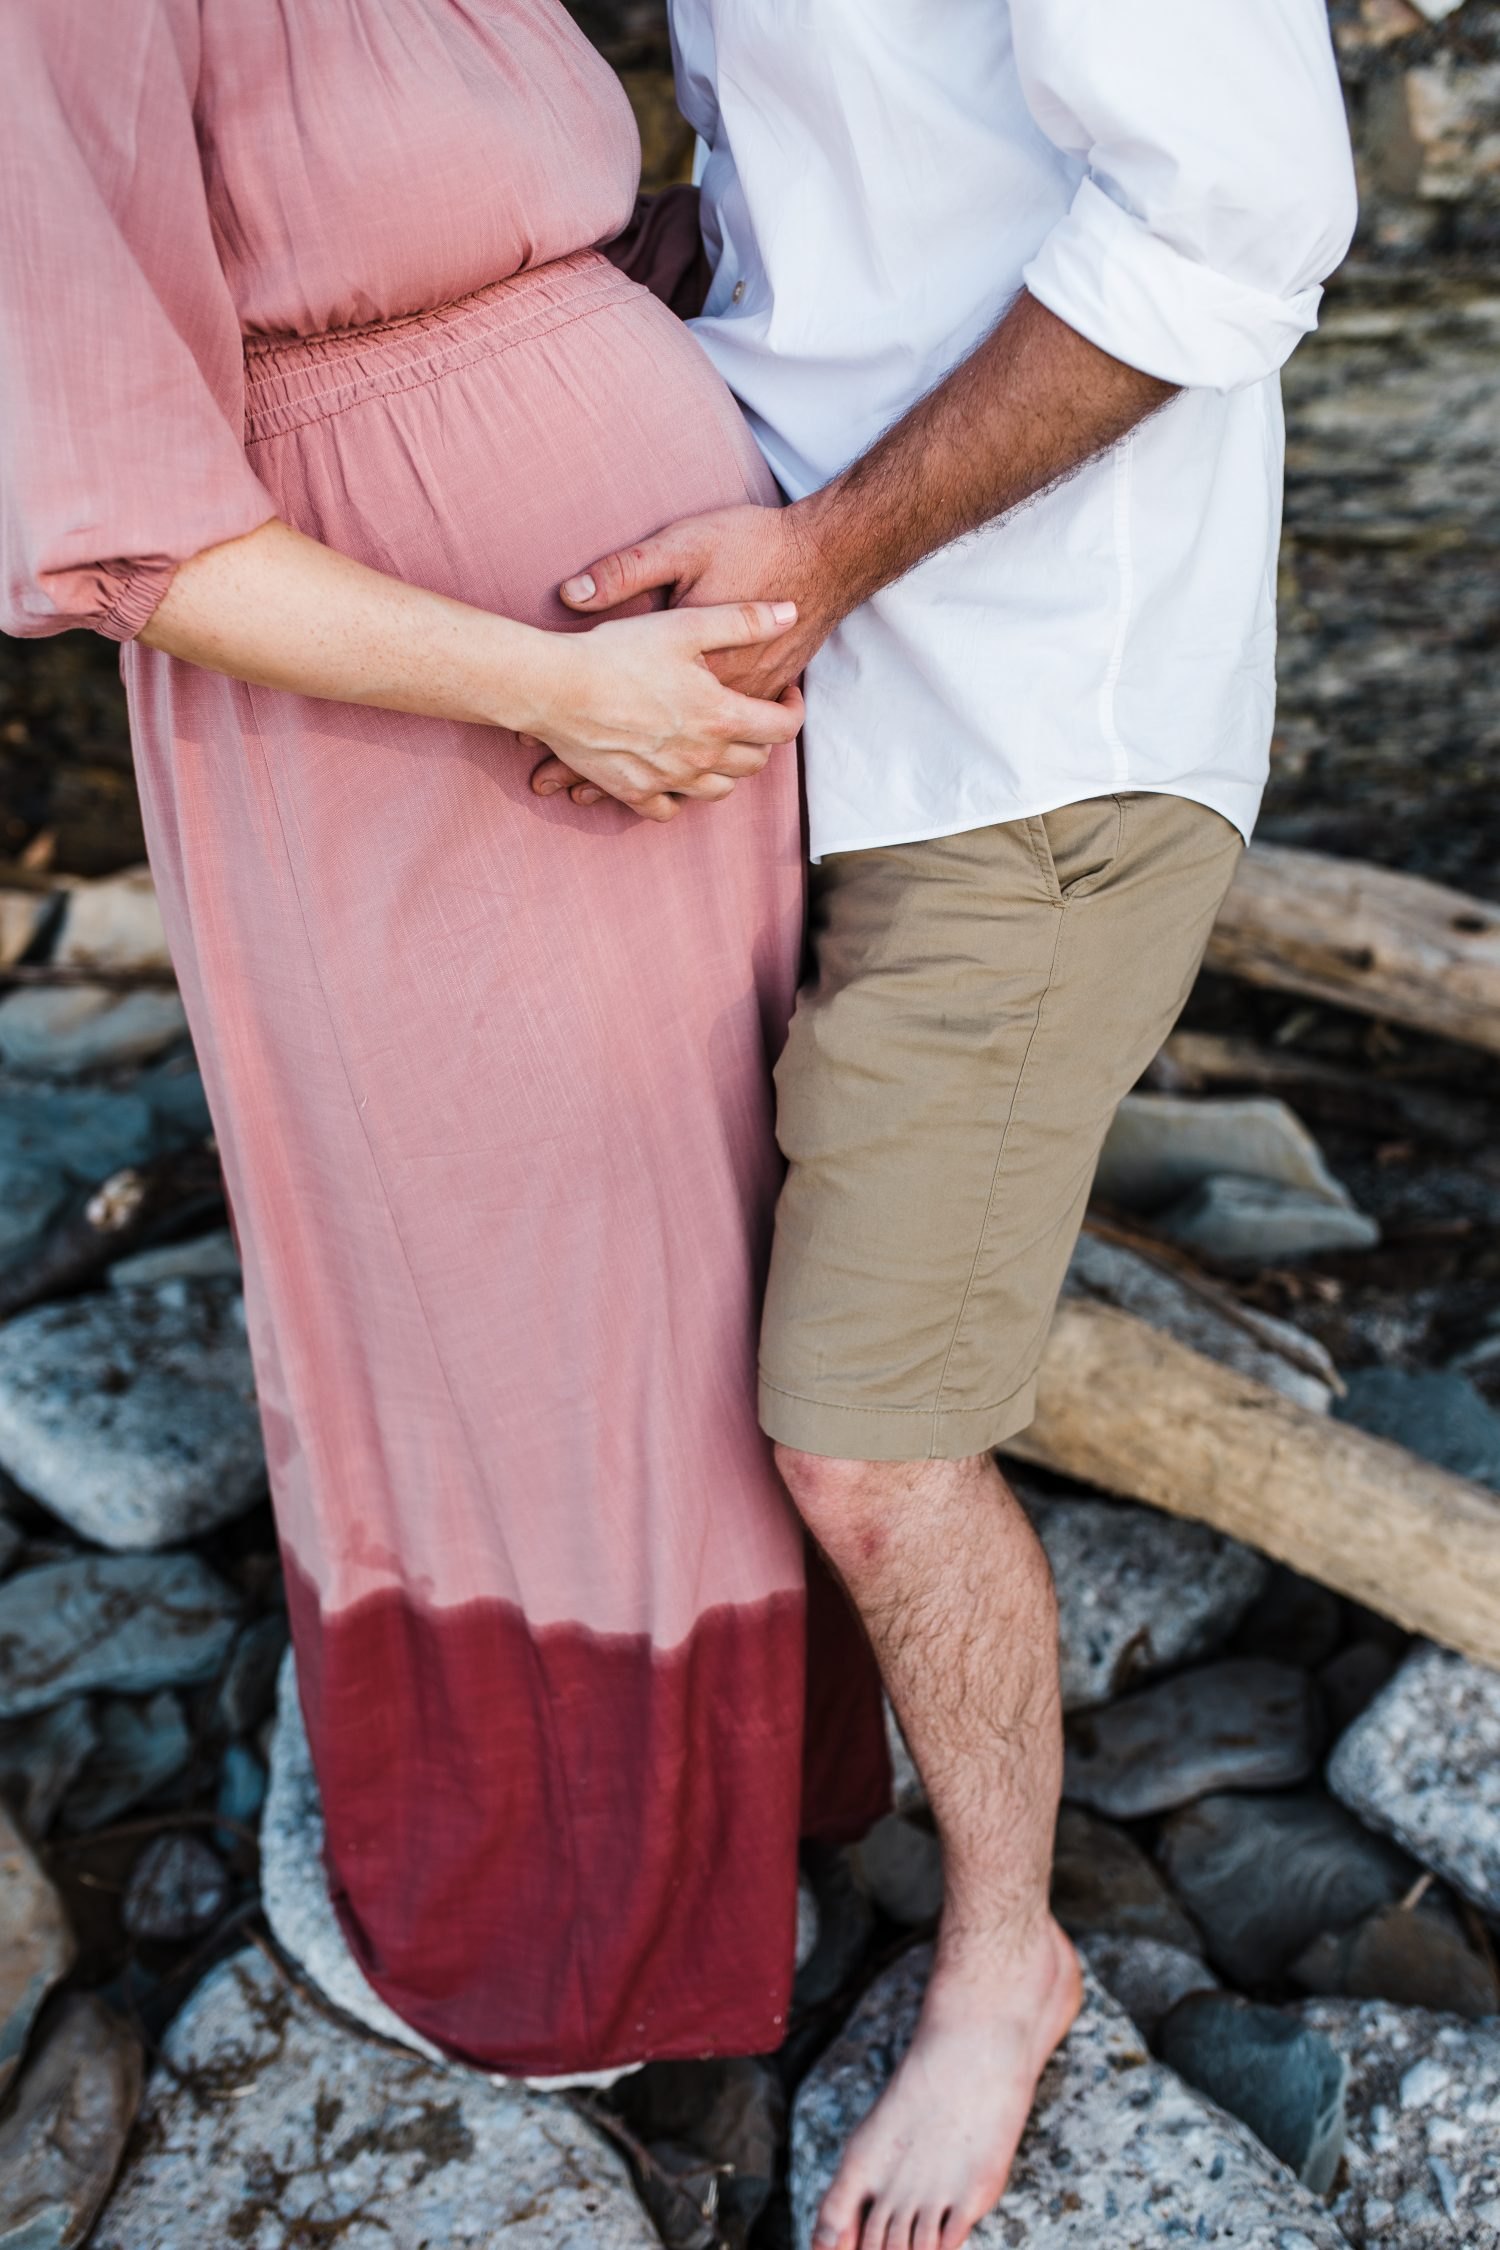 Easterday Creative | Adventurous wedding photographer and storyteller | Serving North Carolina, South Carolina and beyond | Beach maternity session